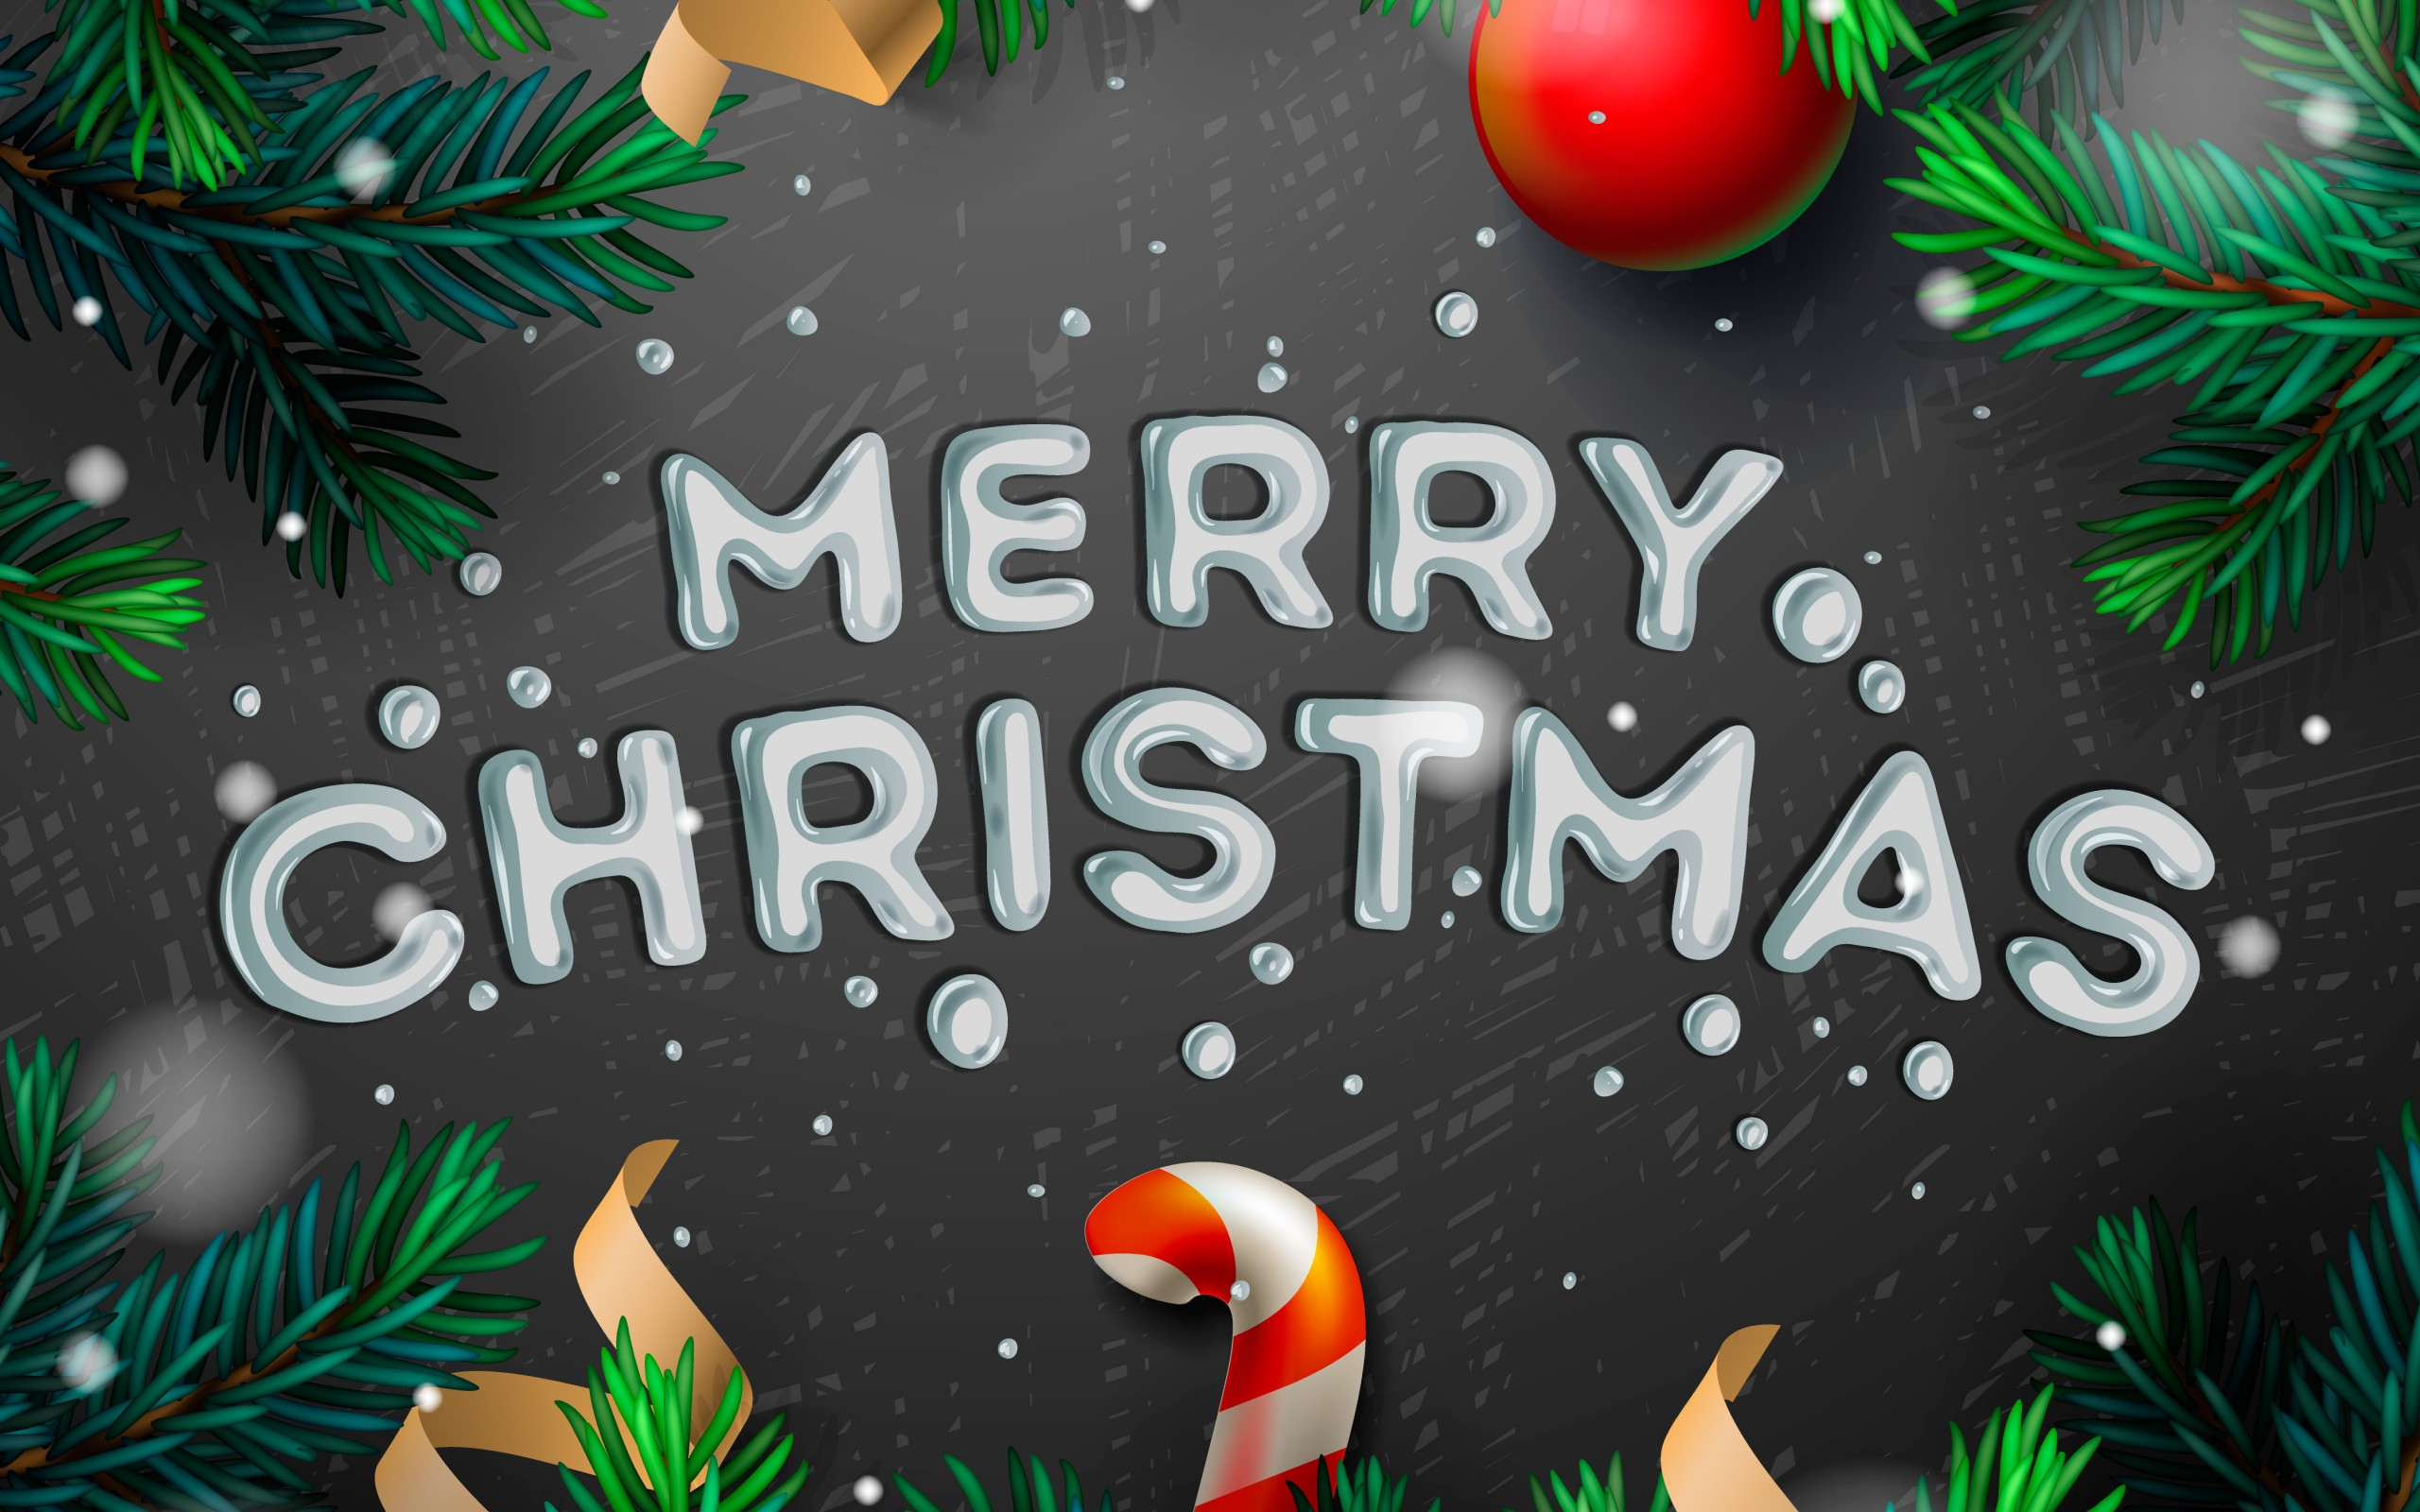 Merry Christmas Wallpaper For Pc , HD Wallpaper & Backgrounds